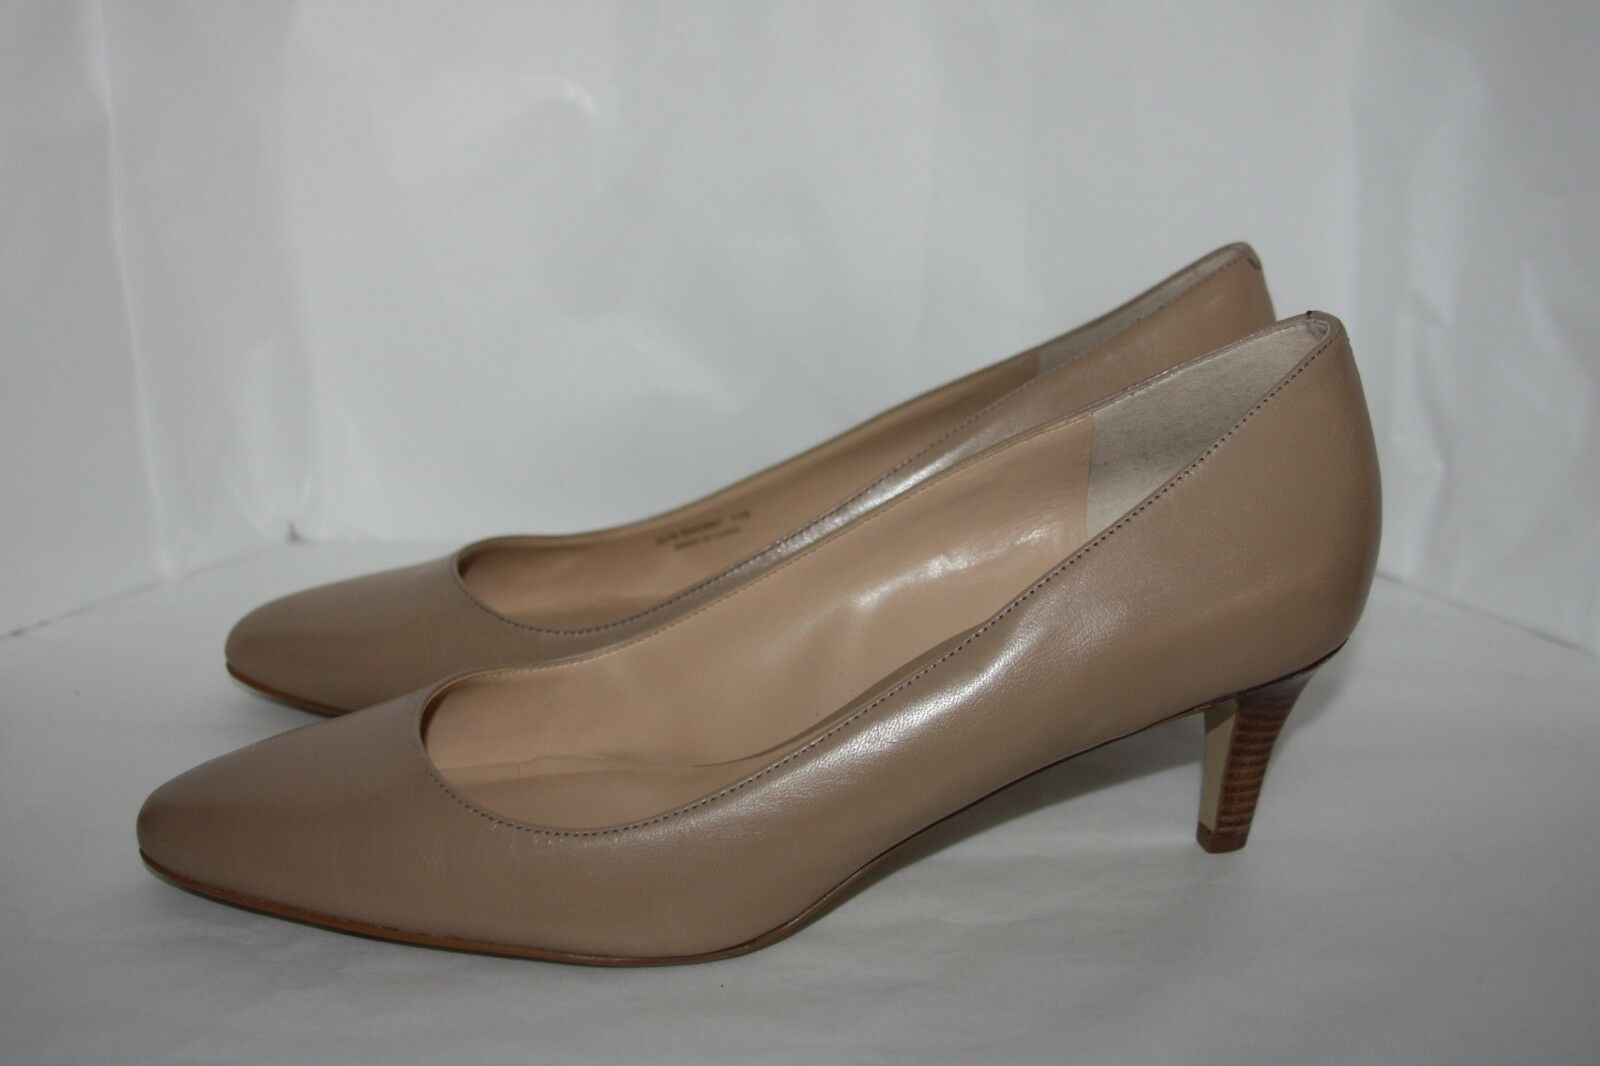 Cole Haan Lena Mid II Pump II Mid Maple Sugar women's size 11 b 62a7bd